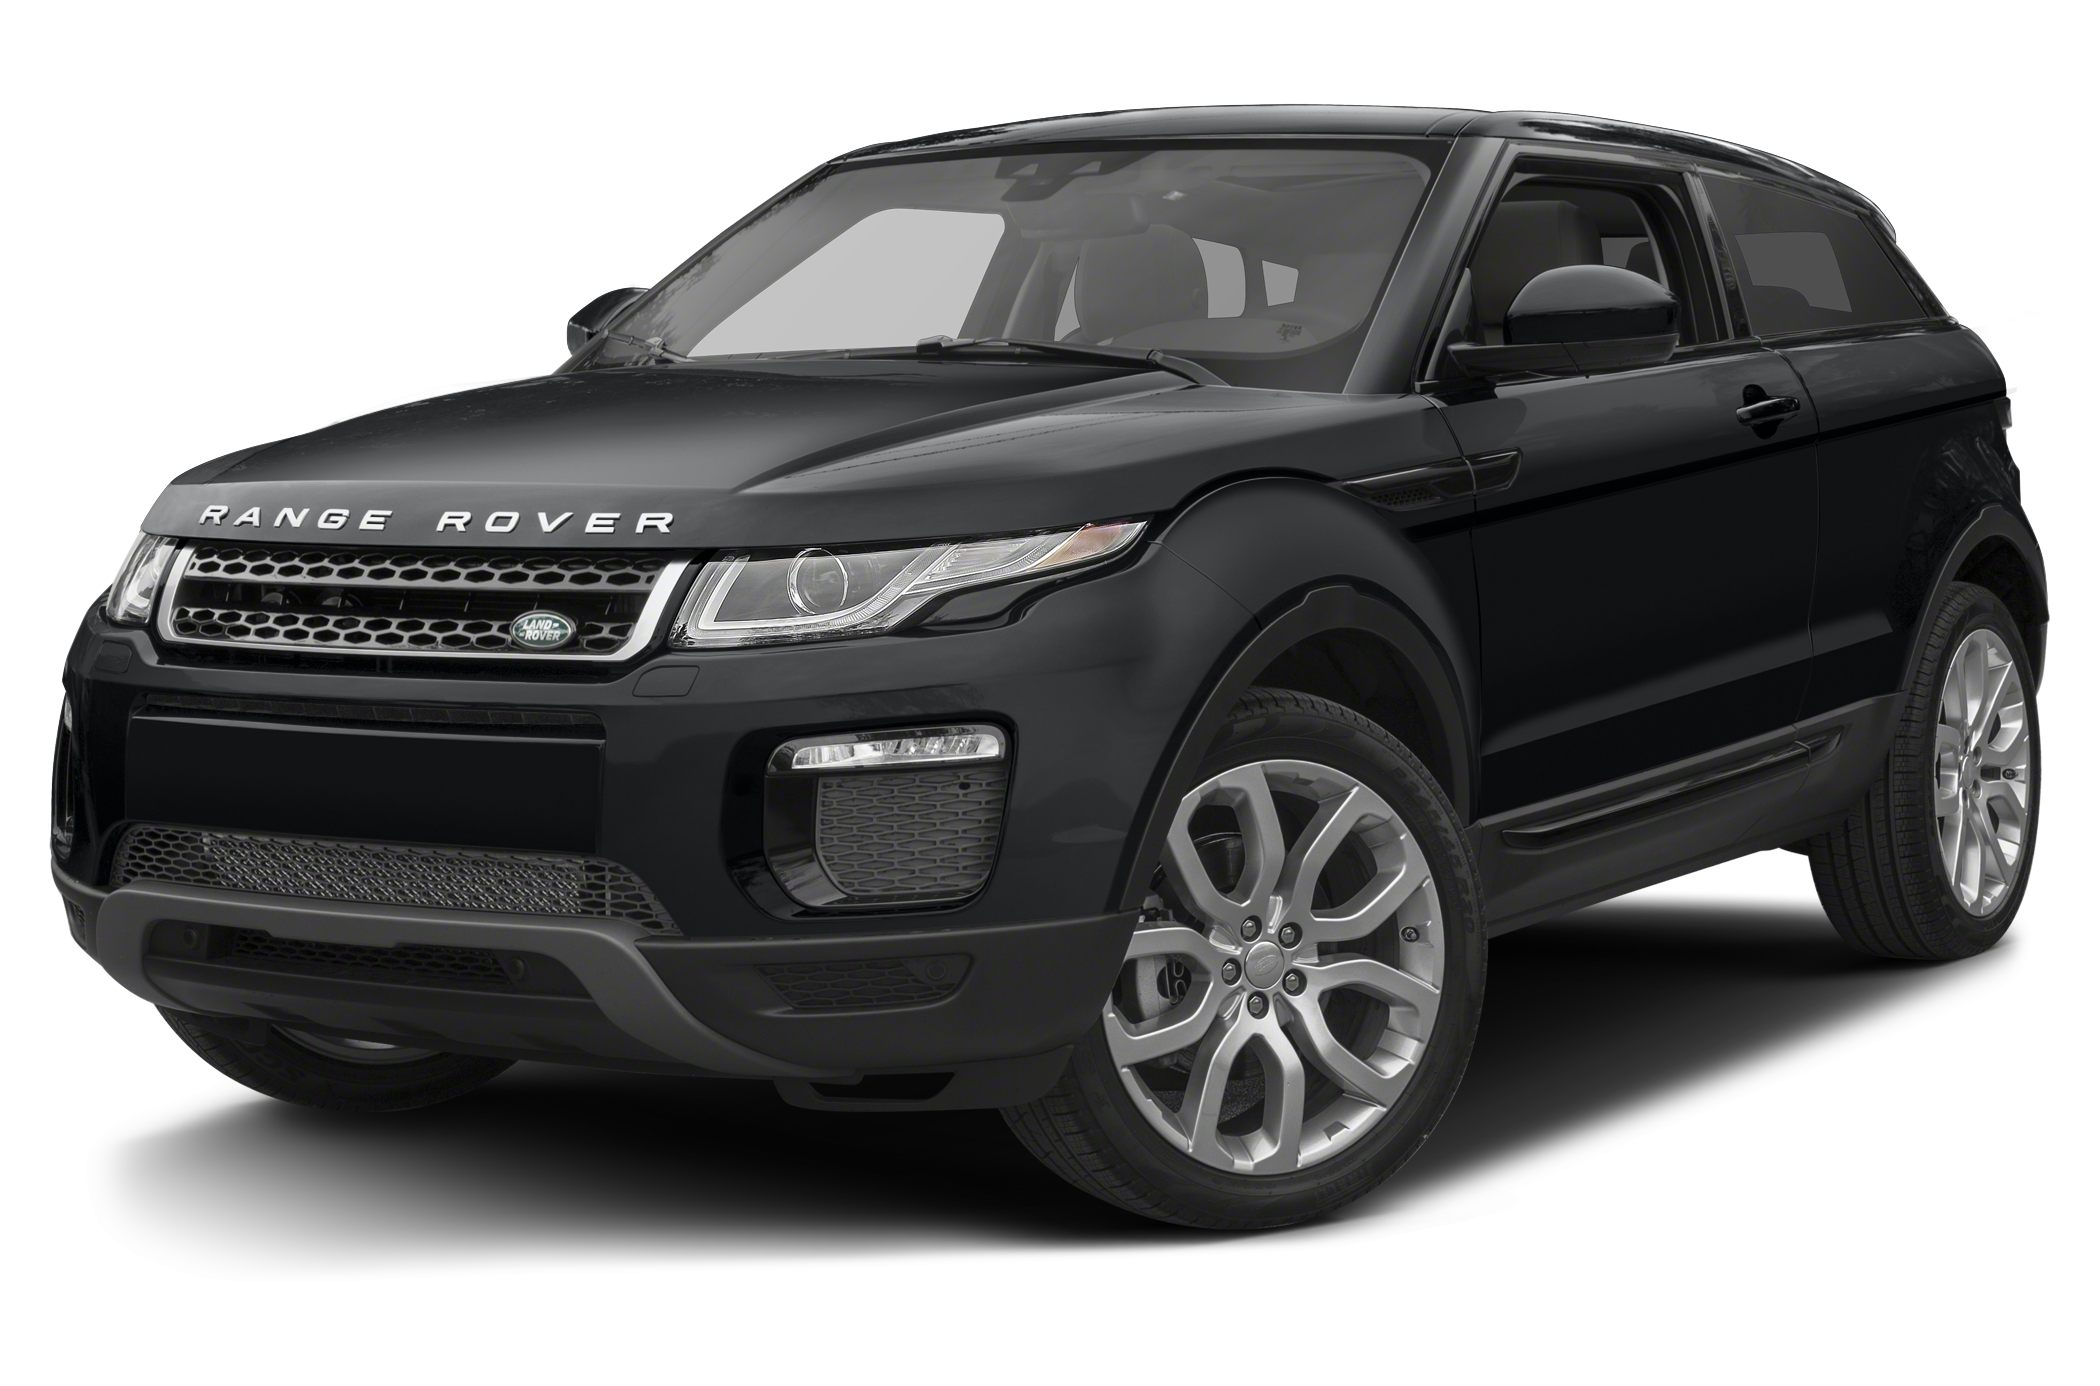 land rover range rover evoque pricing reviews and new model information autoblog. Black Bedroom Furniture Sets. Home Design Ideas